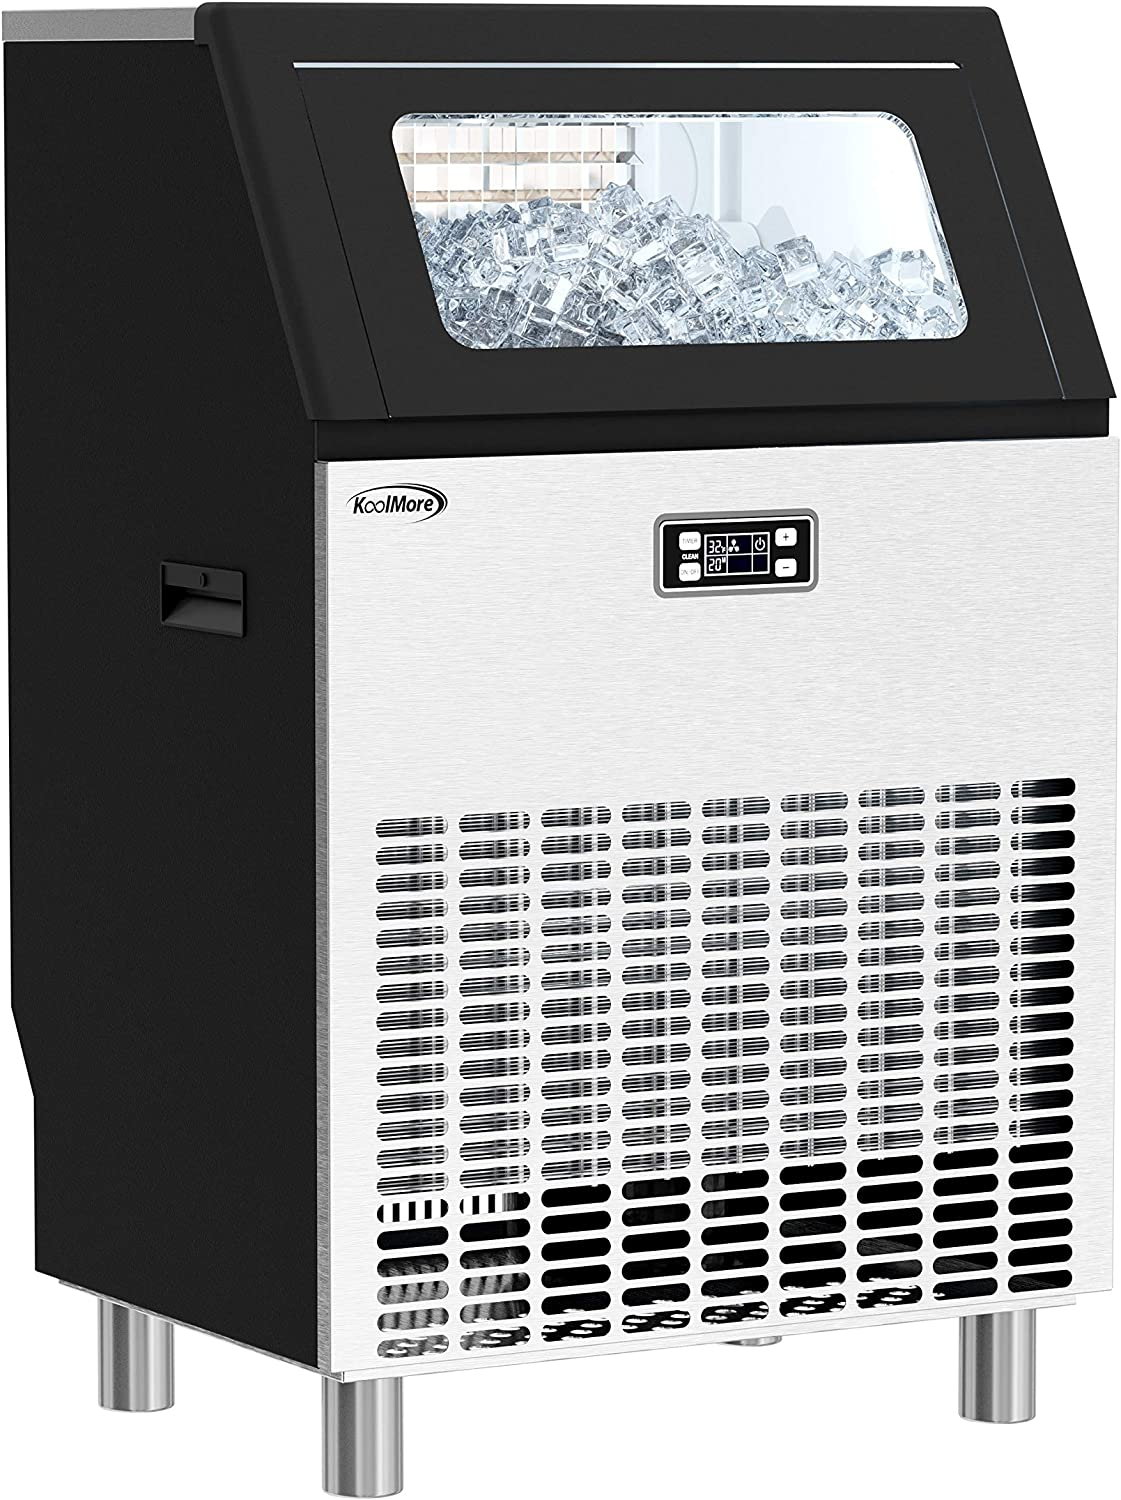 KoolMore Undercounter Ice Maker Machine, Commercial and Residential, Produces 198 lbs. of Cubes in 24 Hrs, Energy Efficient for Bar, Cafe, Restaurant or Event Use, Black